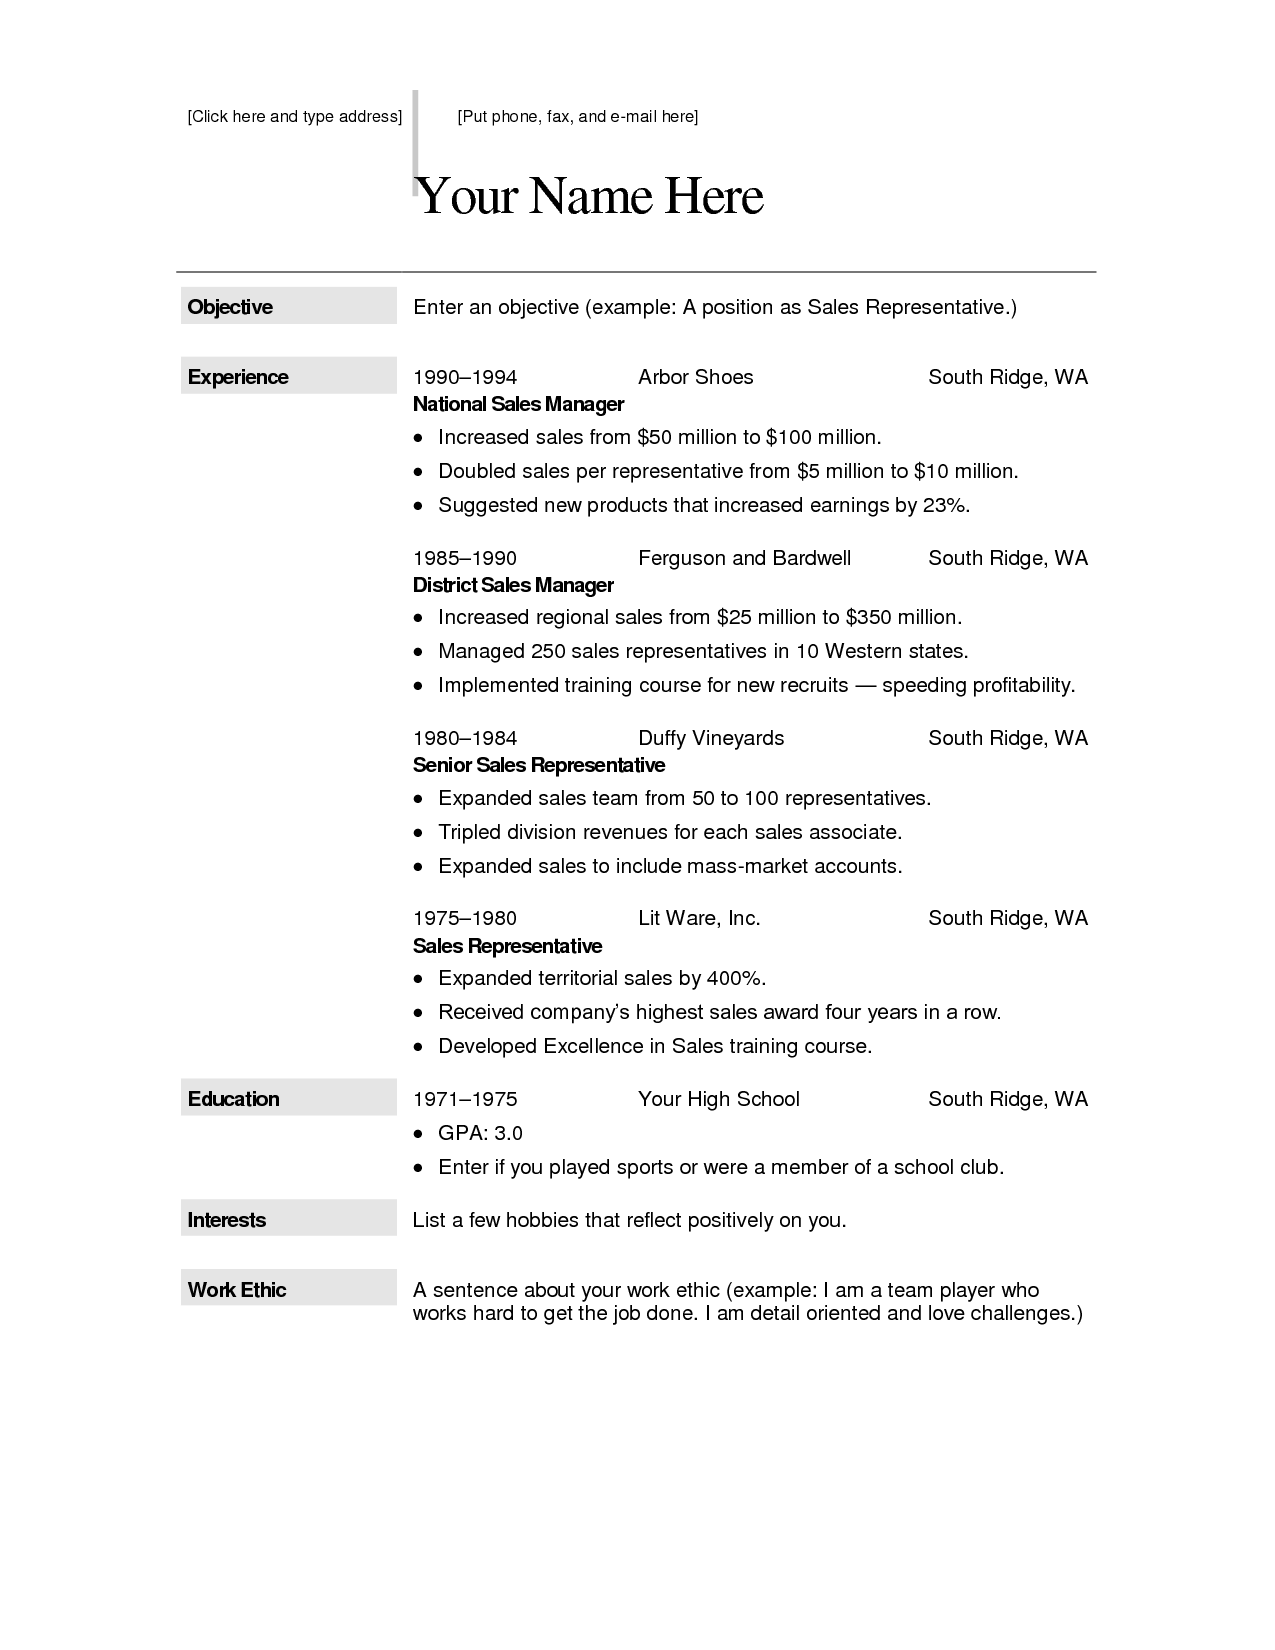 Free Blank Resume Templates Free Creative Resume Templates For Macfree Creative Resume